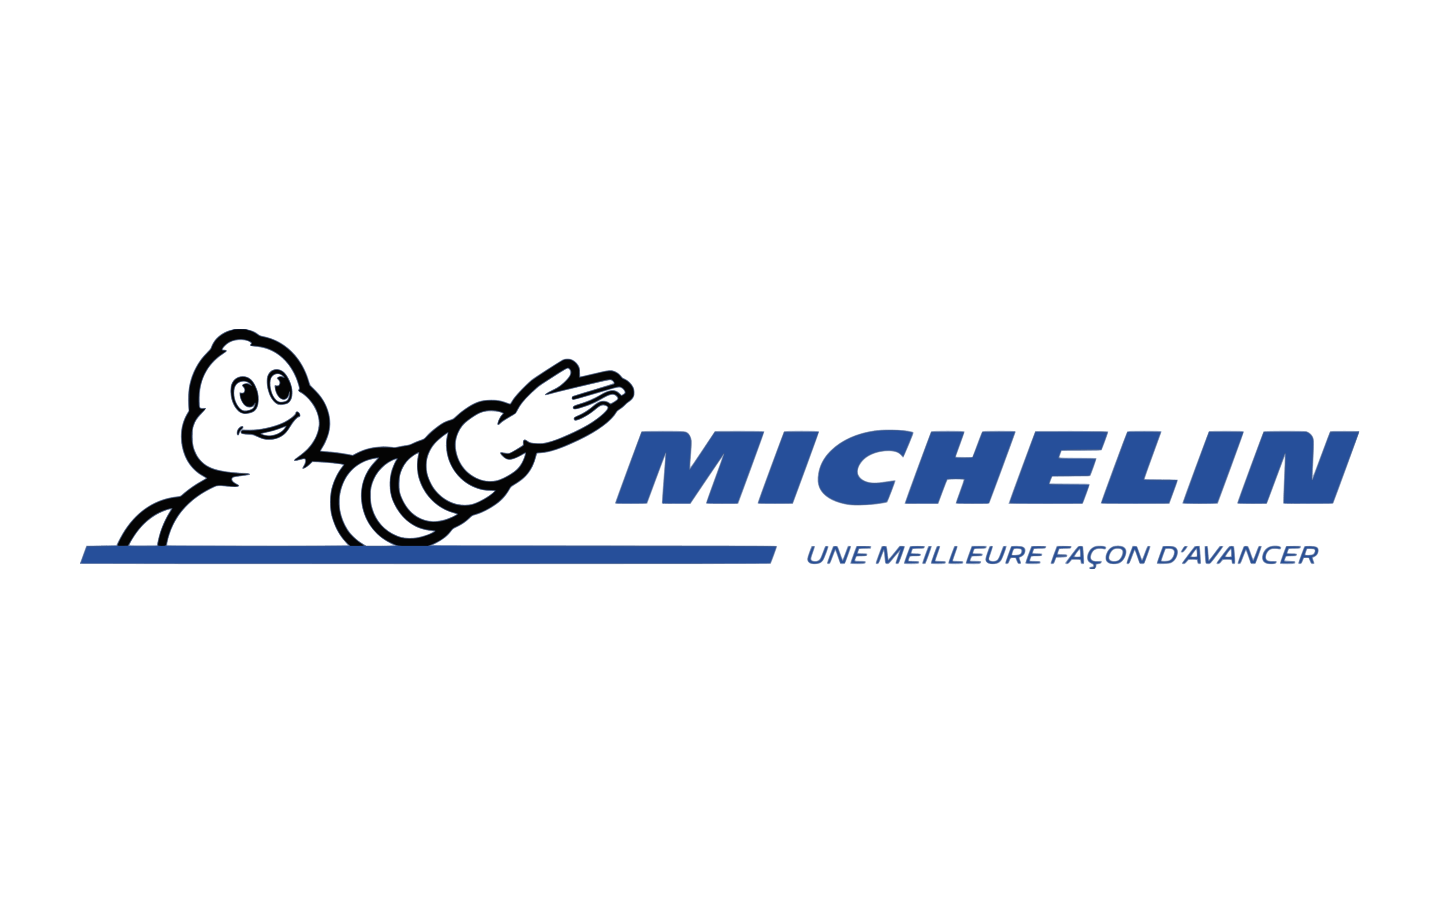 Michelin logo 1440x900 - Home 2